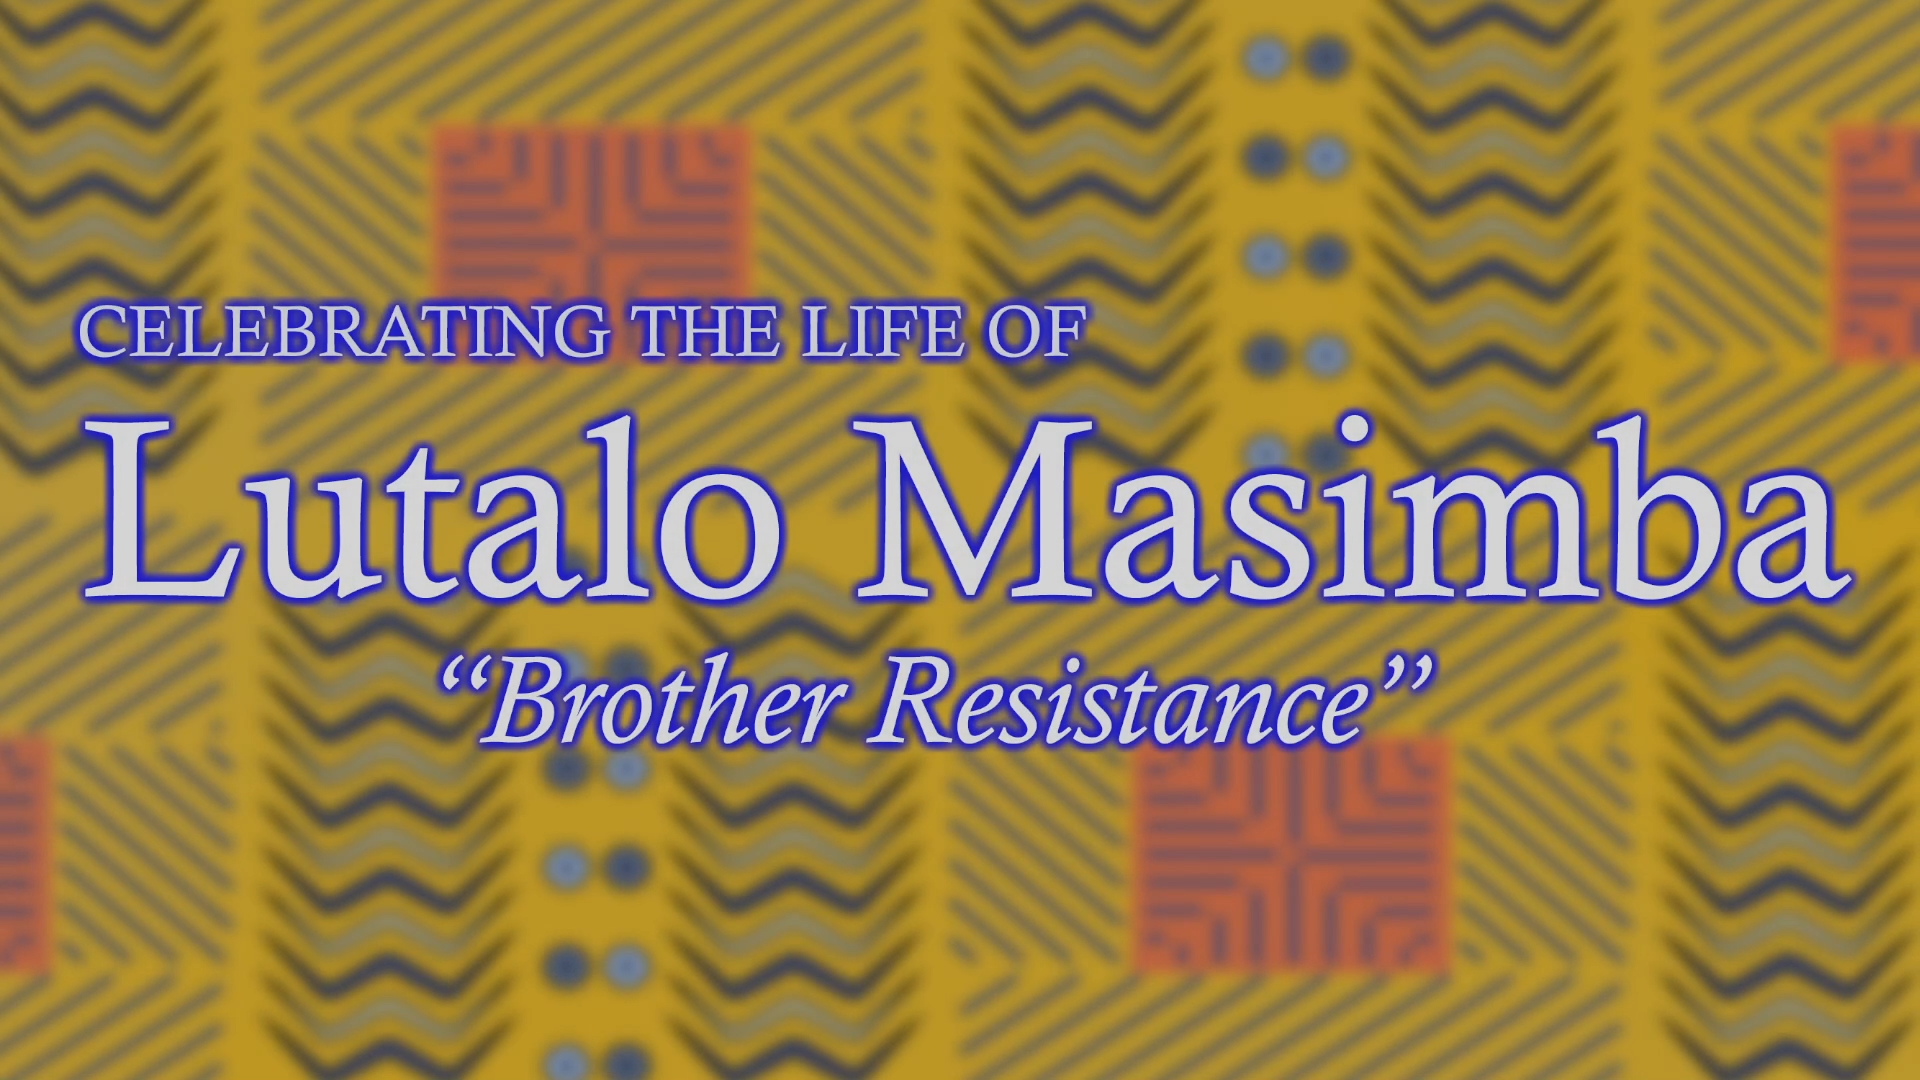 Celebrating The Life of Brother Resistance